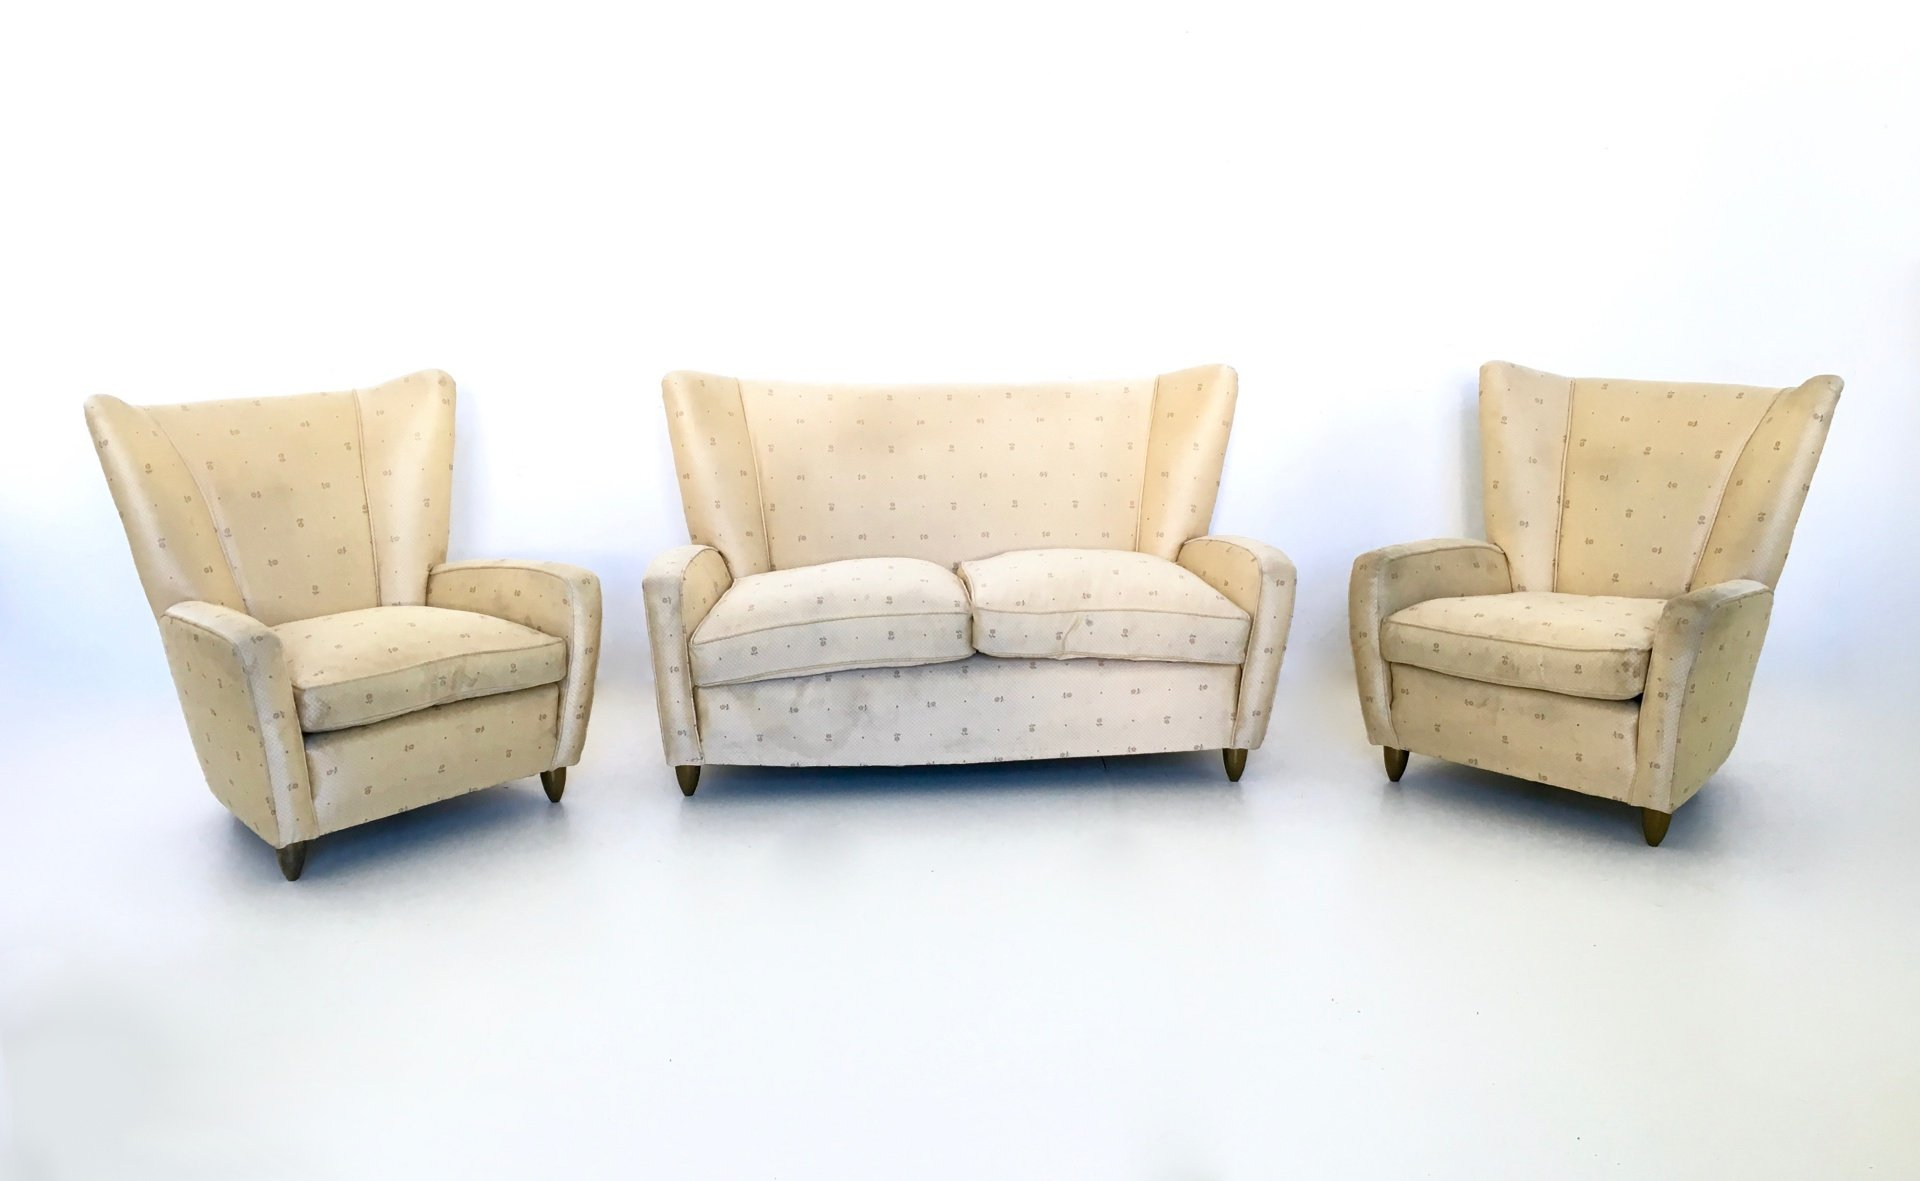 Italian Living Room Set by Paolo Buffa, 1950s for sale at Pamono